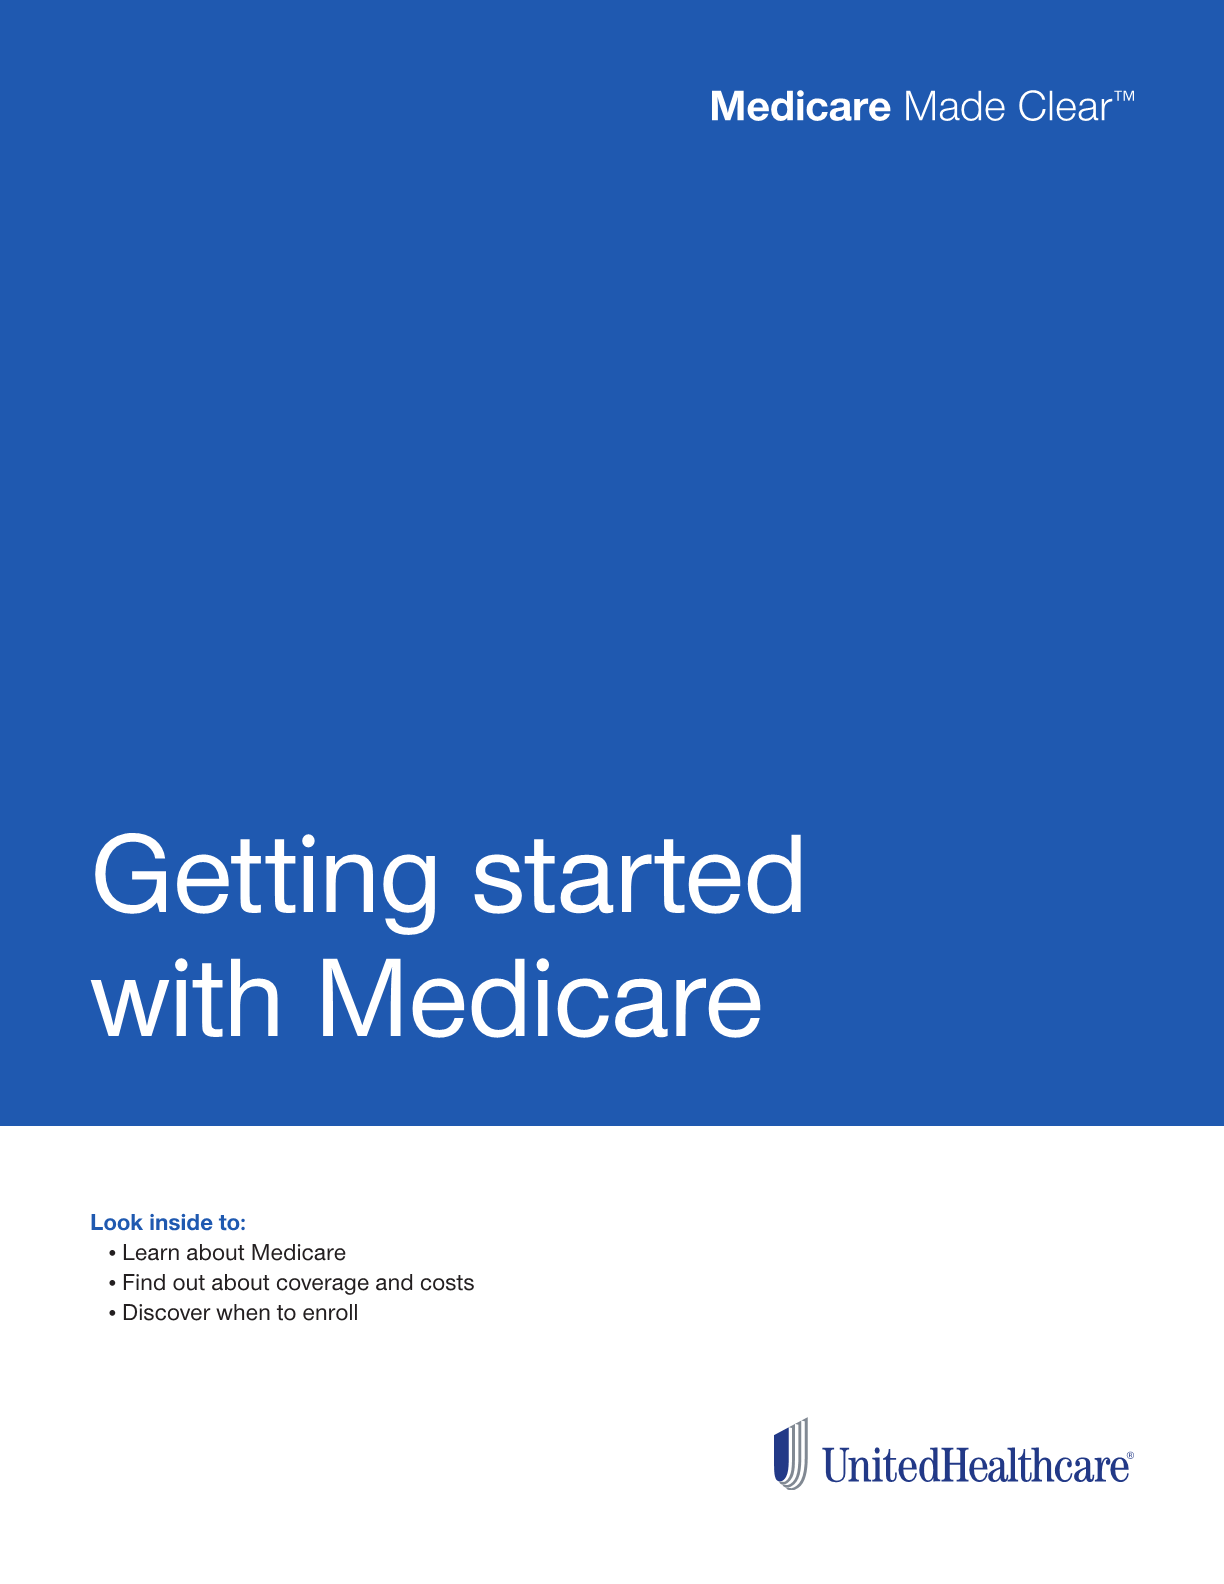 Getting started with Medicare Guide